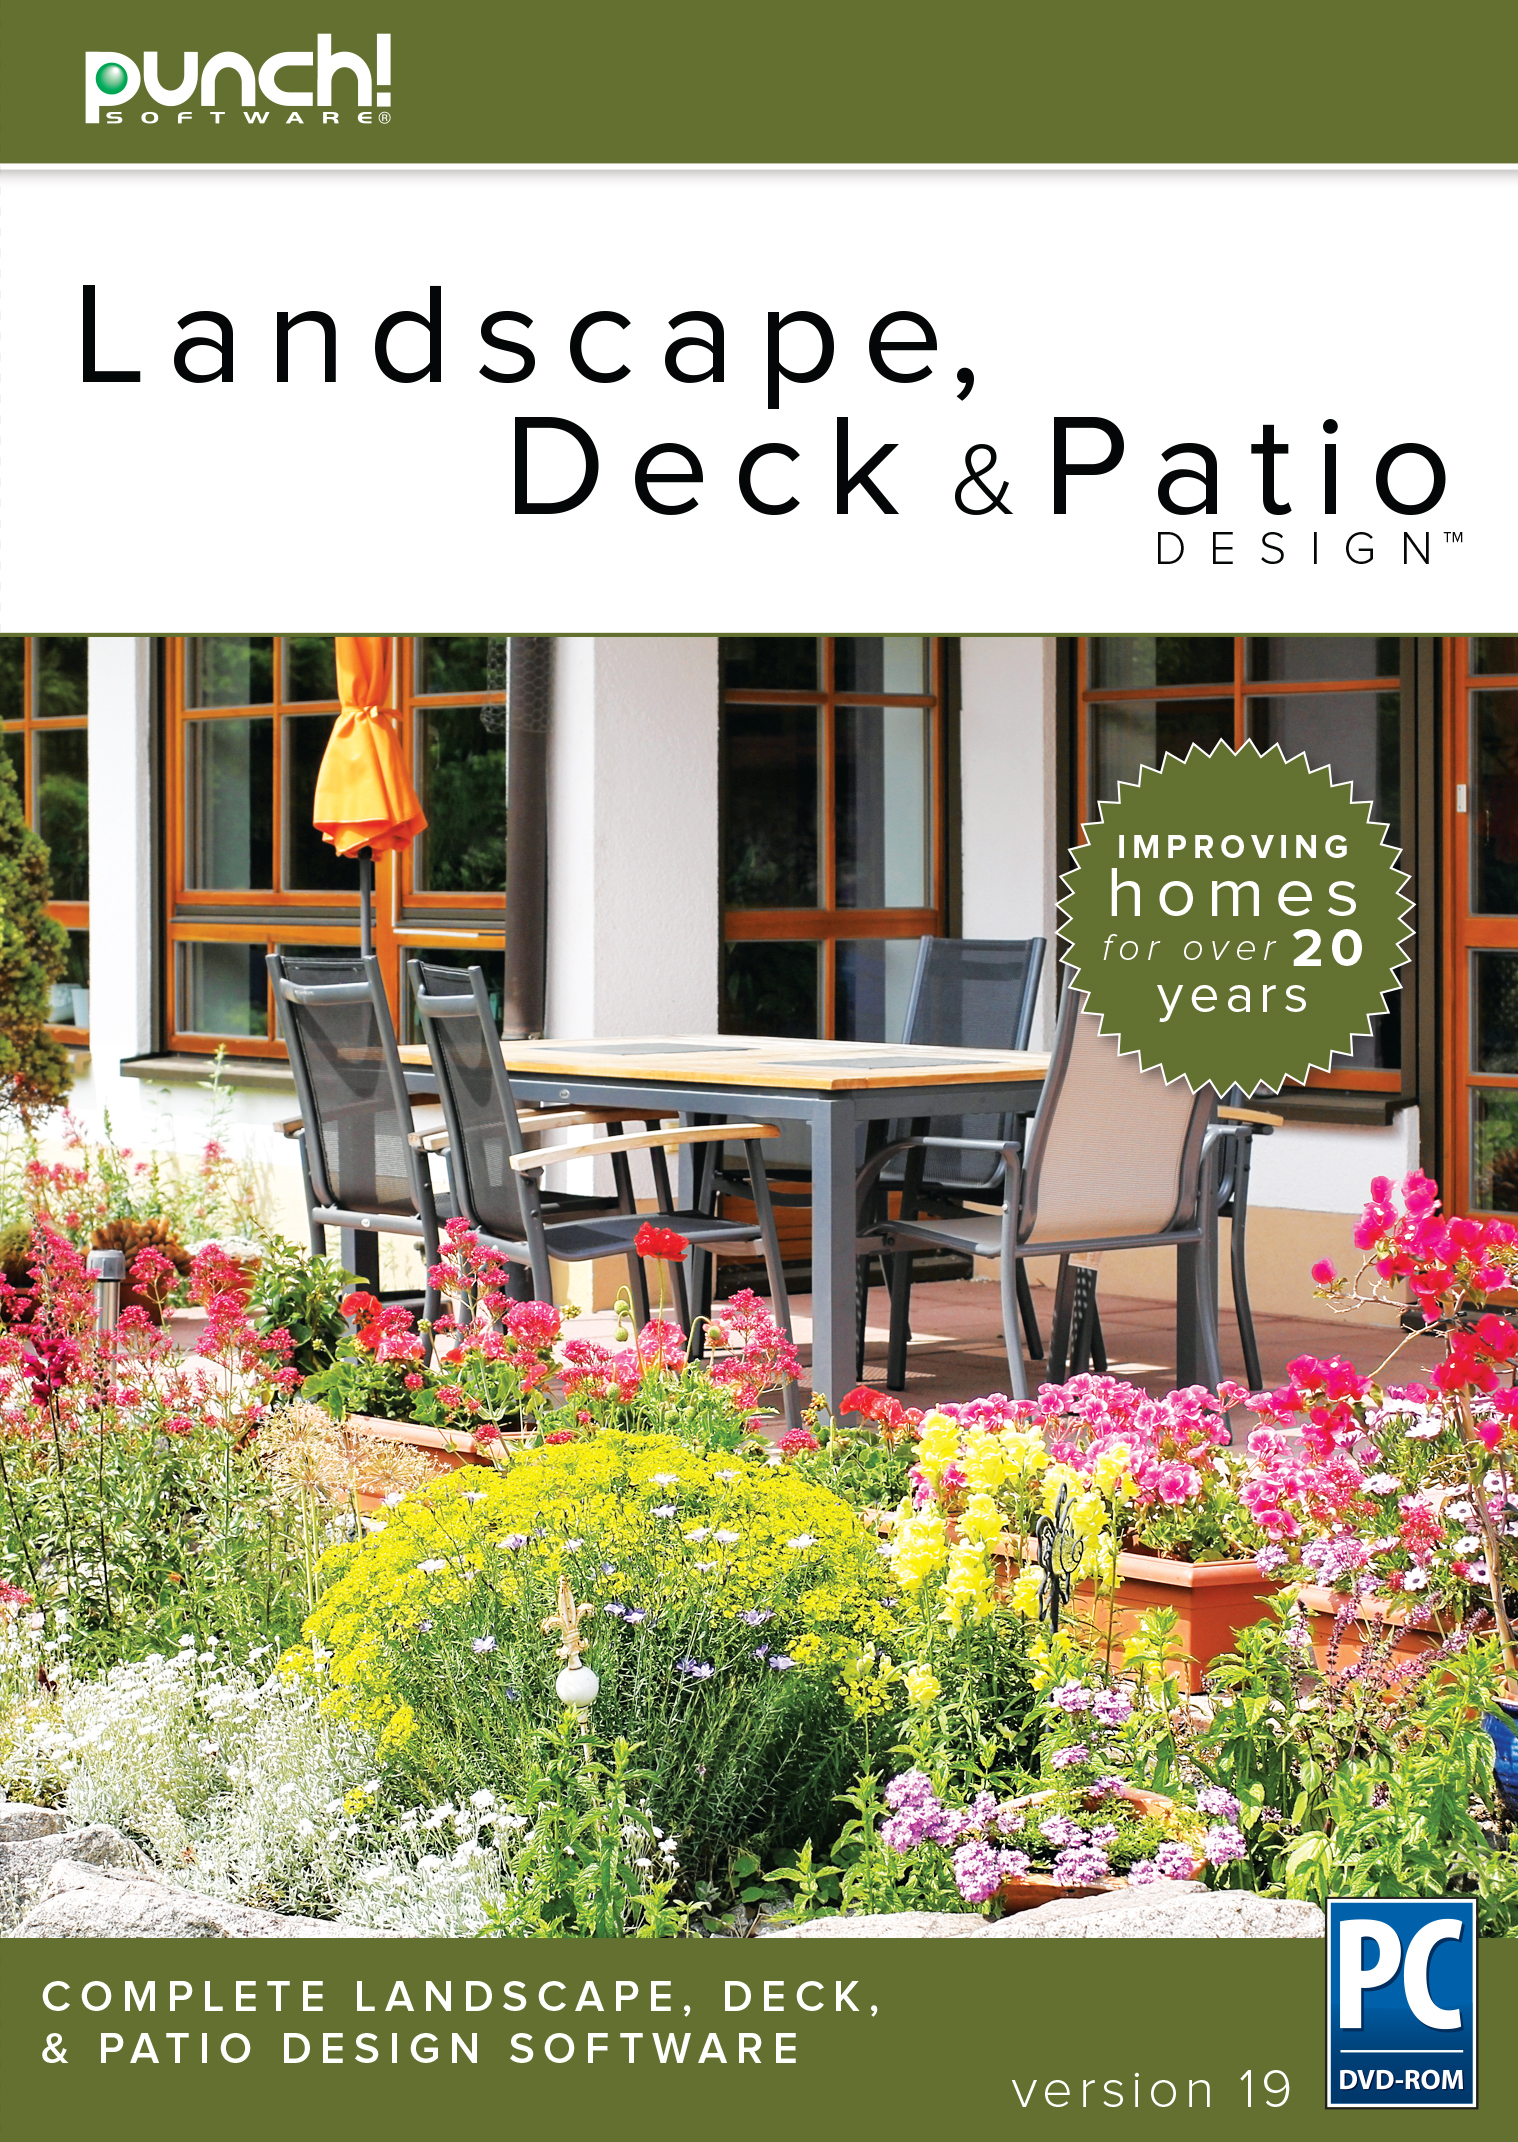 Punch! Landscape, Deck and Patio Design v19 for Windows  PC [Download] by Encore